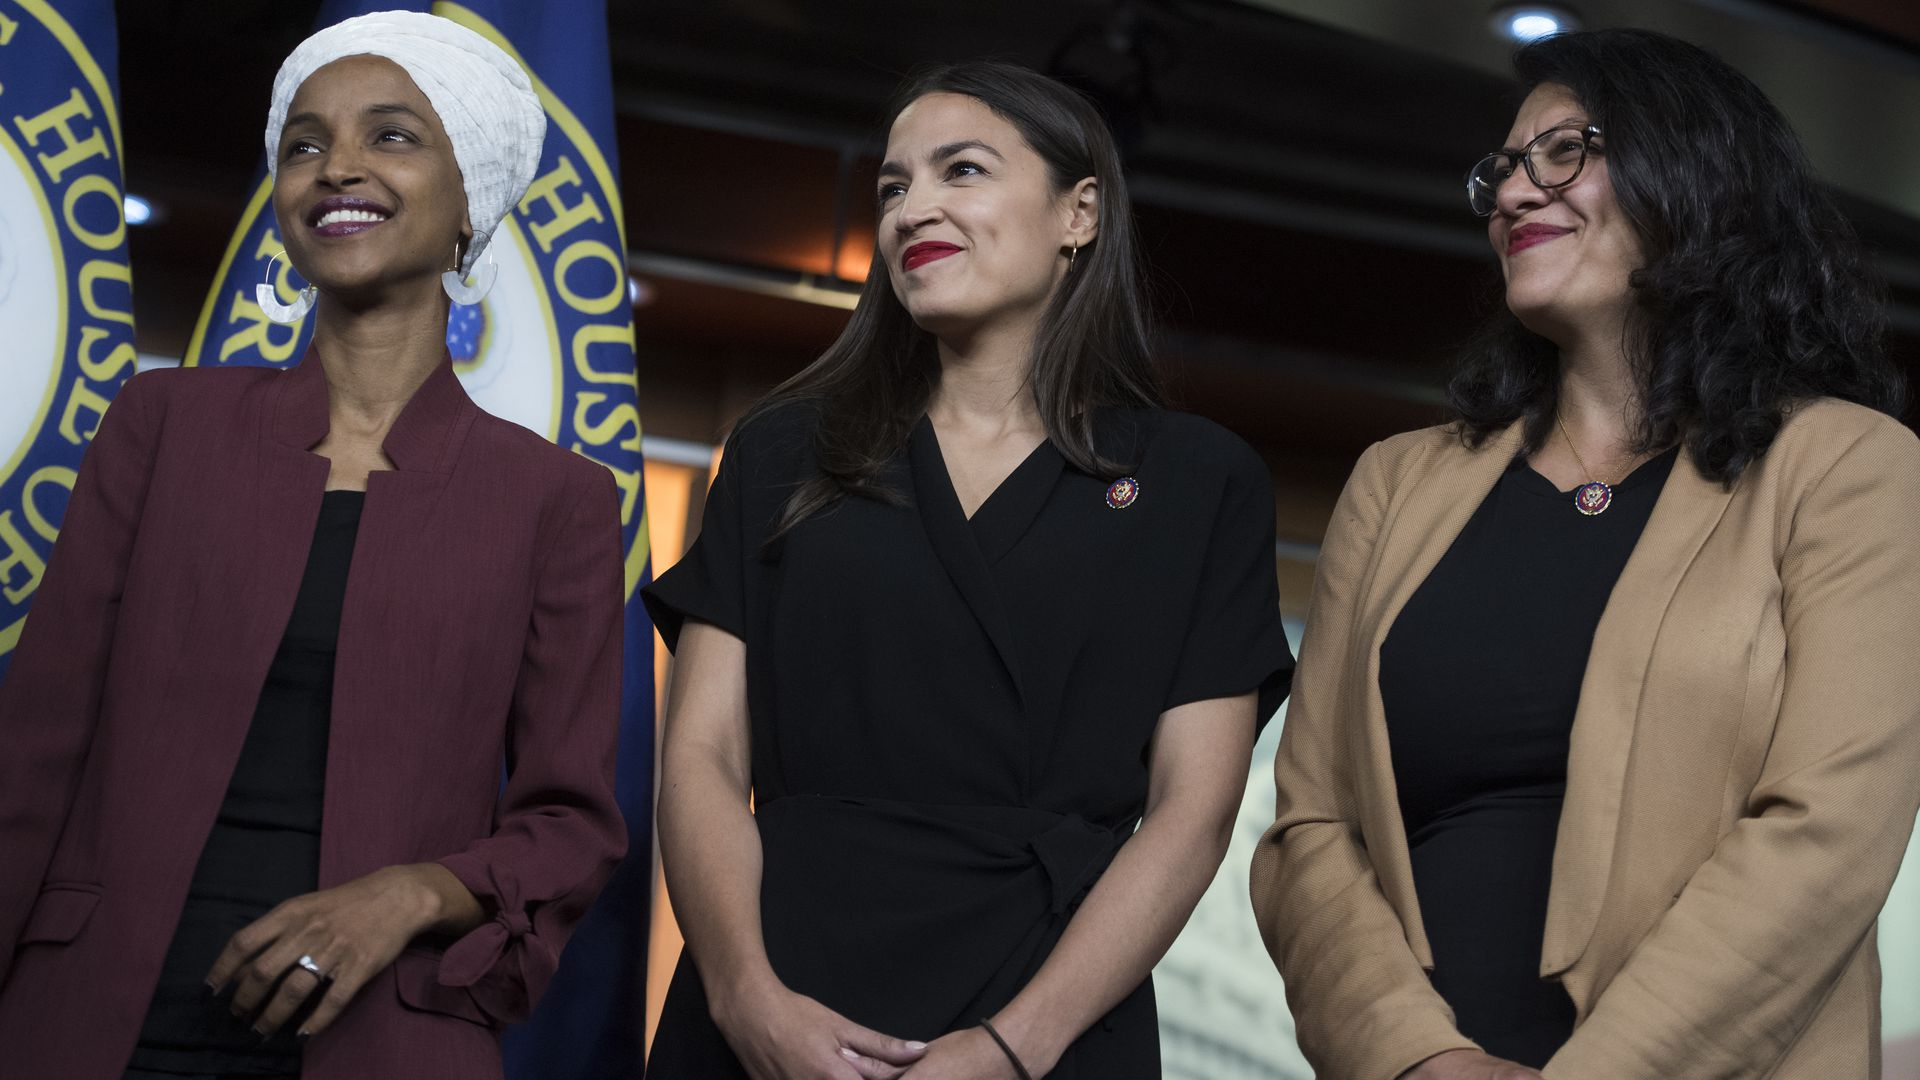 Reps. Ilhan Omar, D-Minn., Alexandria Ocasio-Cortez, D-N.Y., and Rashida Tlaib, D-Mich., conduct a news conference in the Capitol Visitor Center on Monday, July 15